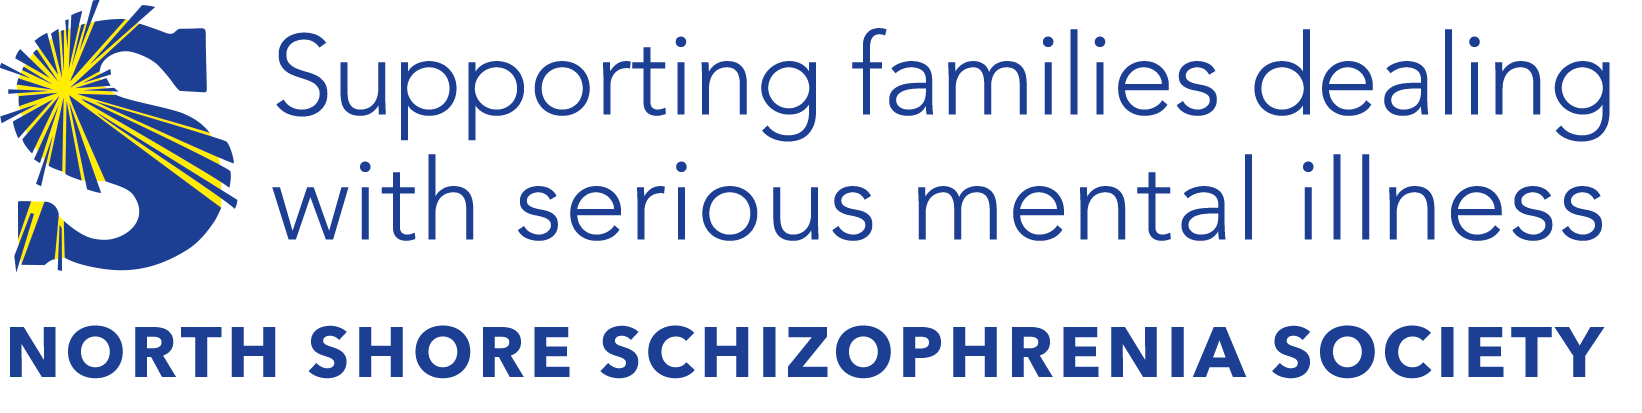 North Shore Schizophrenia Society